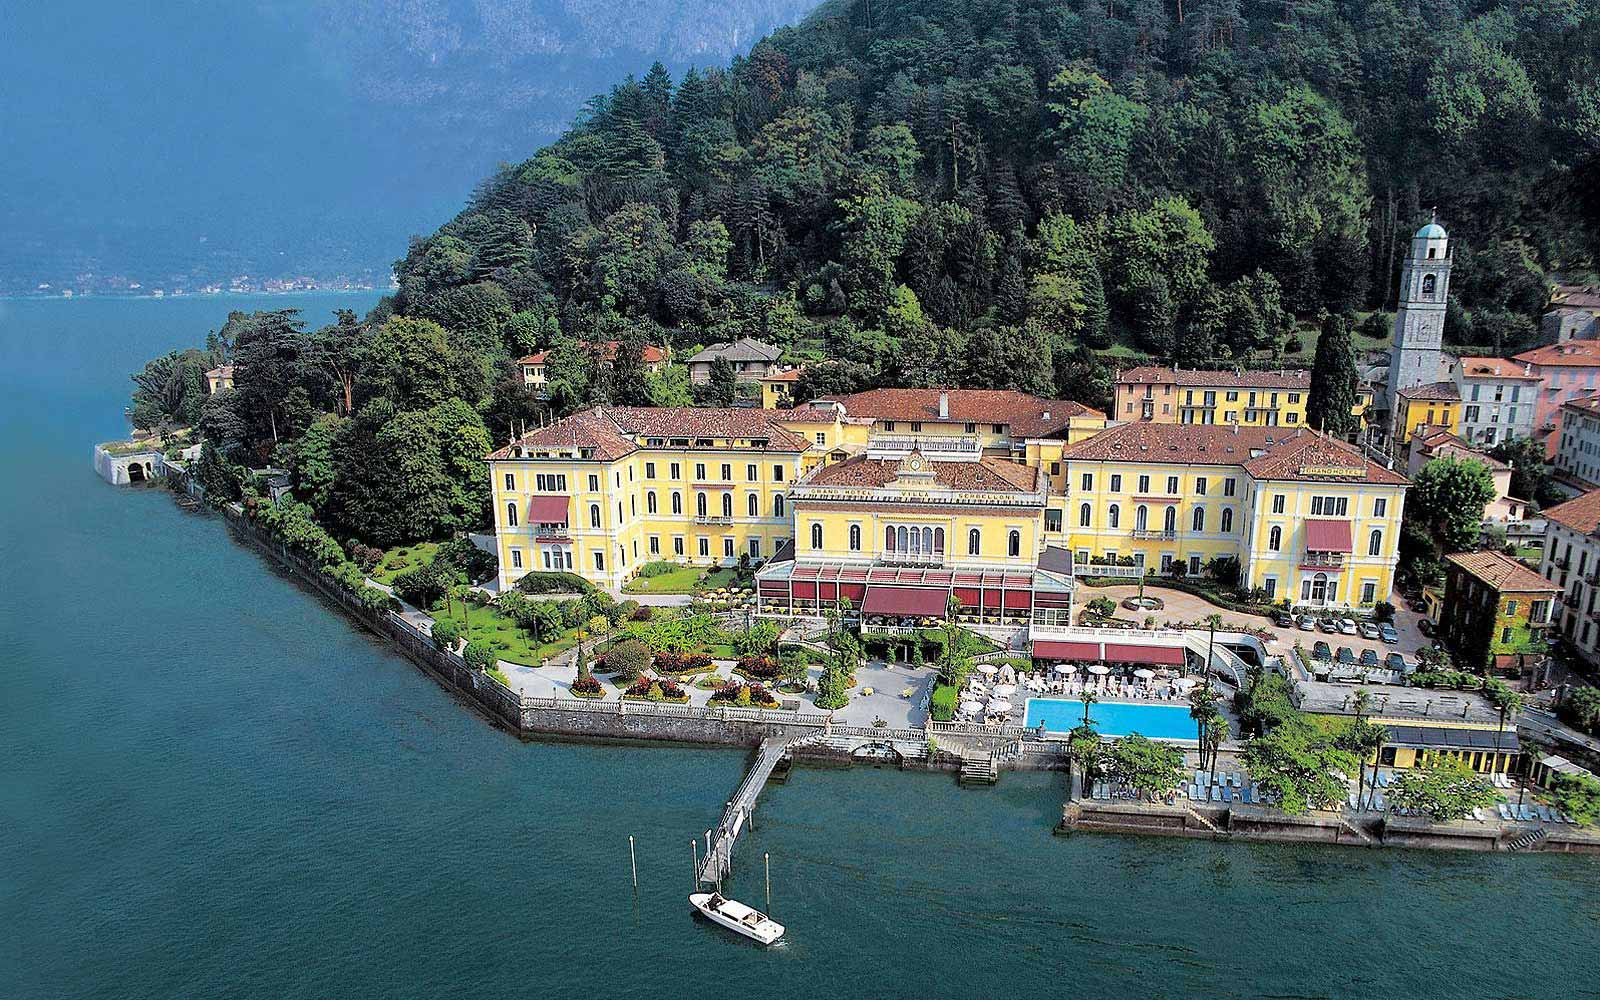 Panoramic view of Grand Hotel Villa Serbelloni